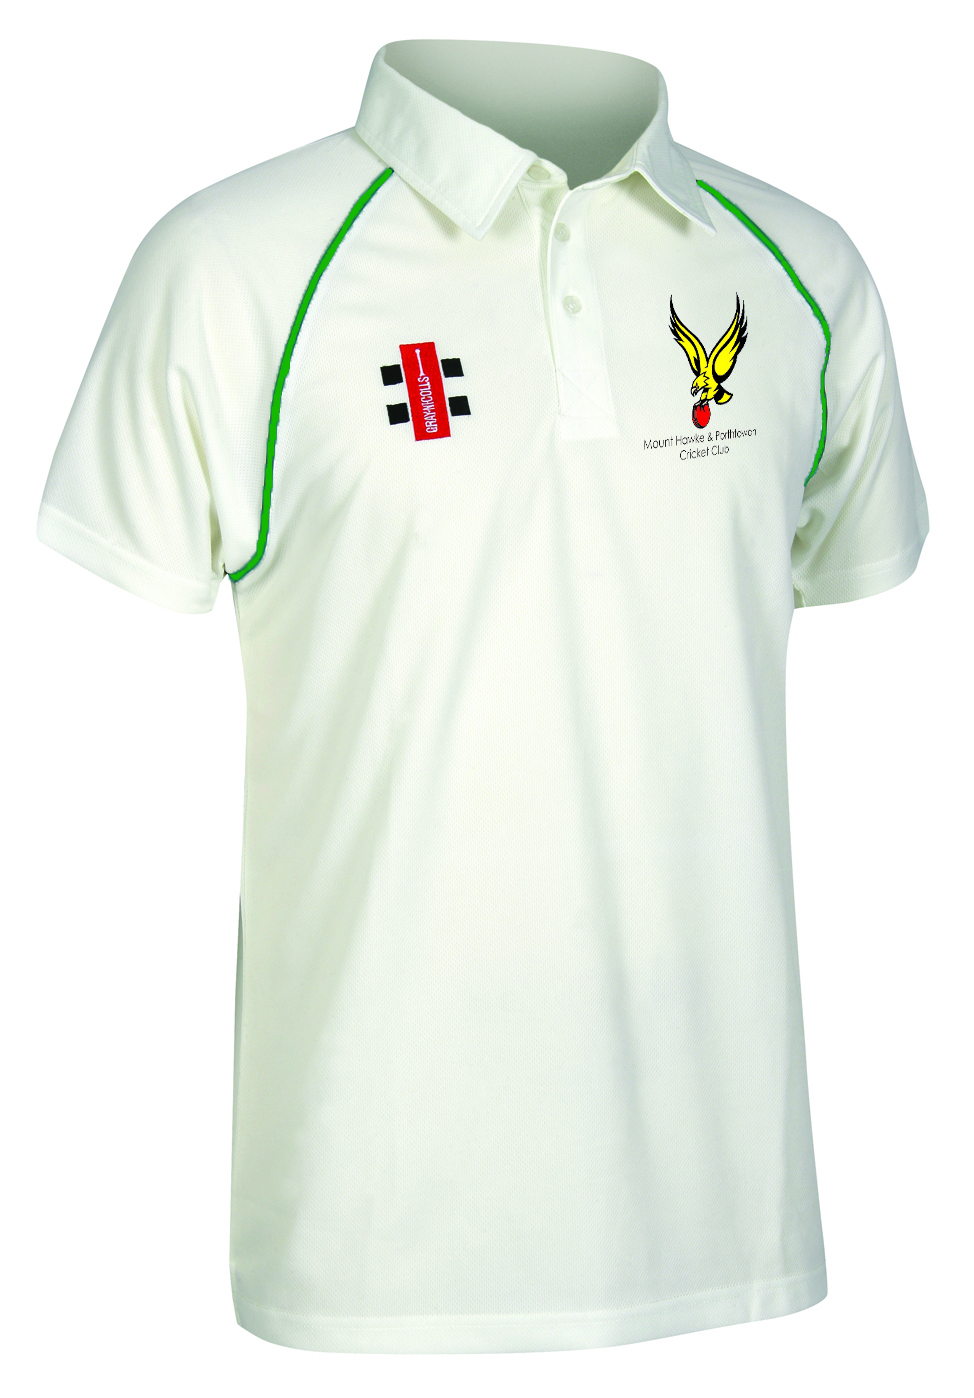 MHCC Short Sleeved Playing Shirt